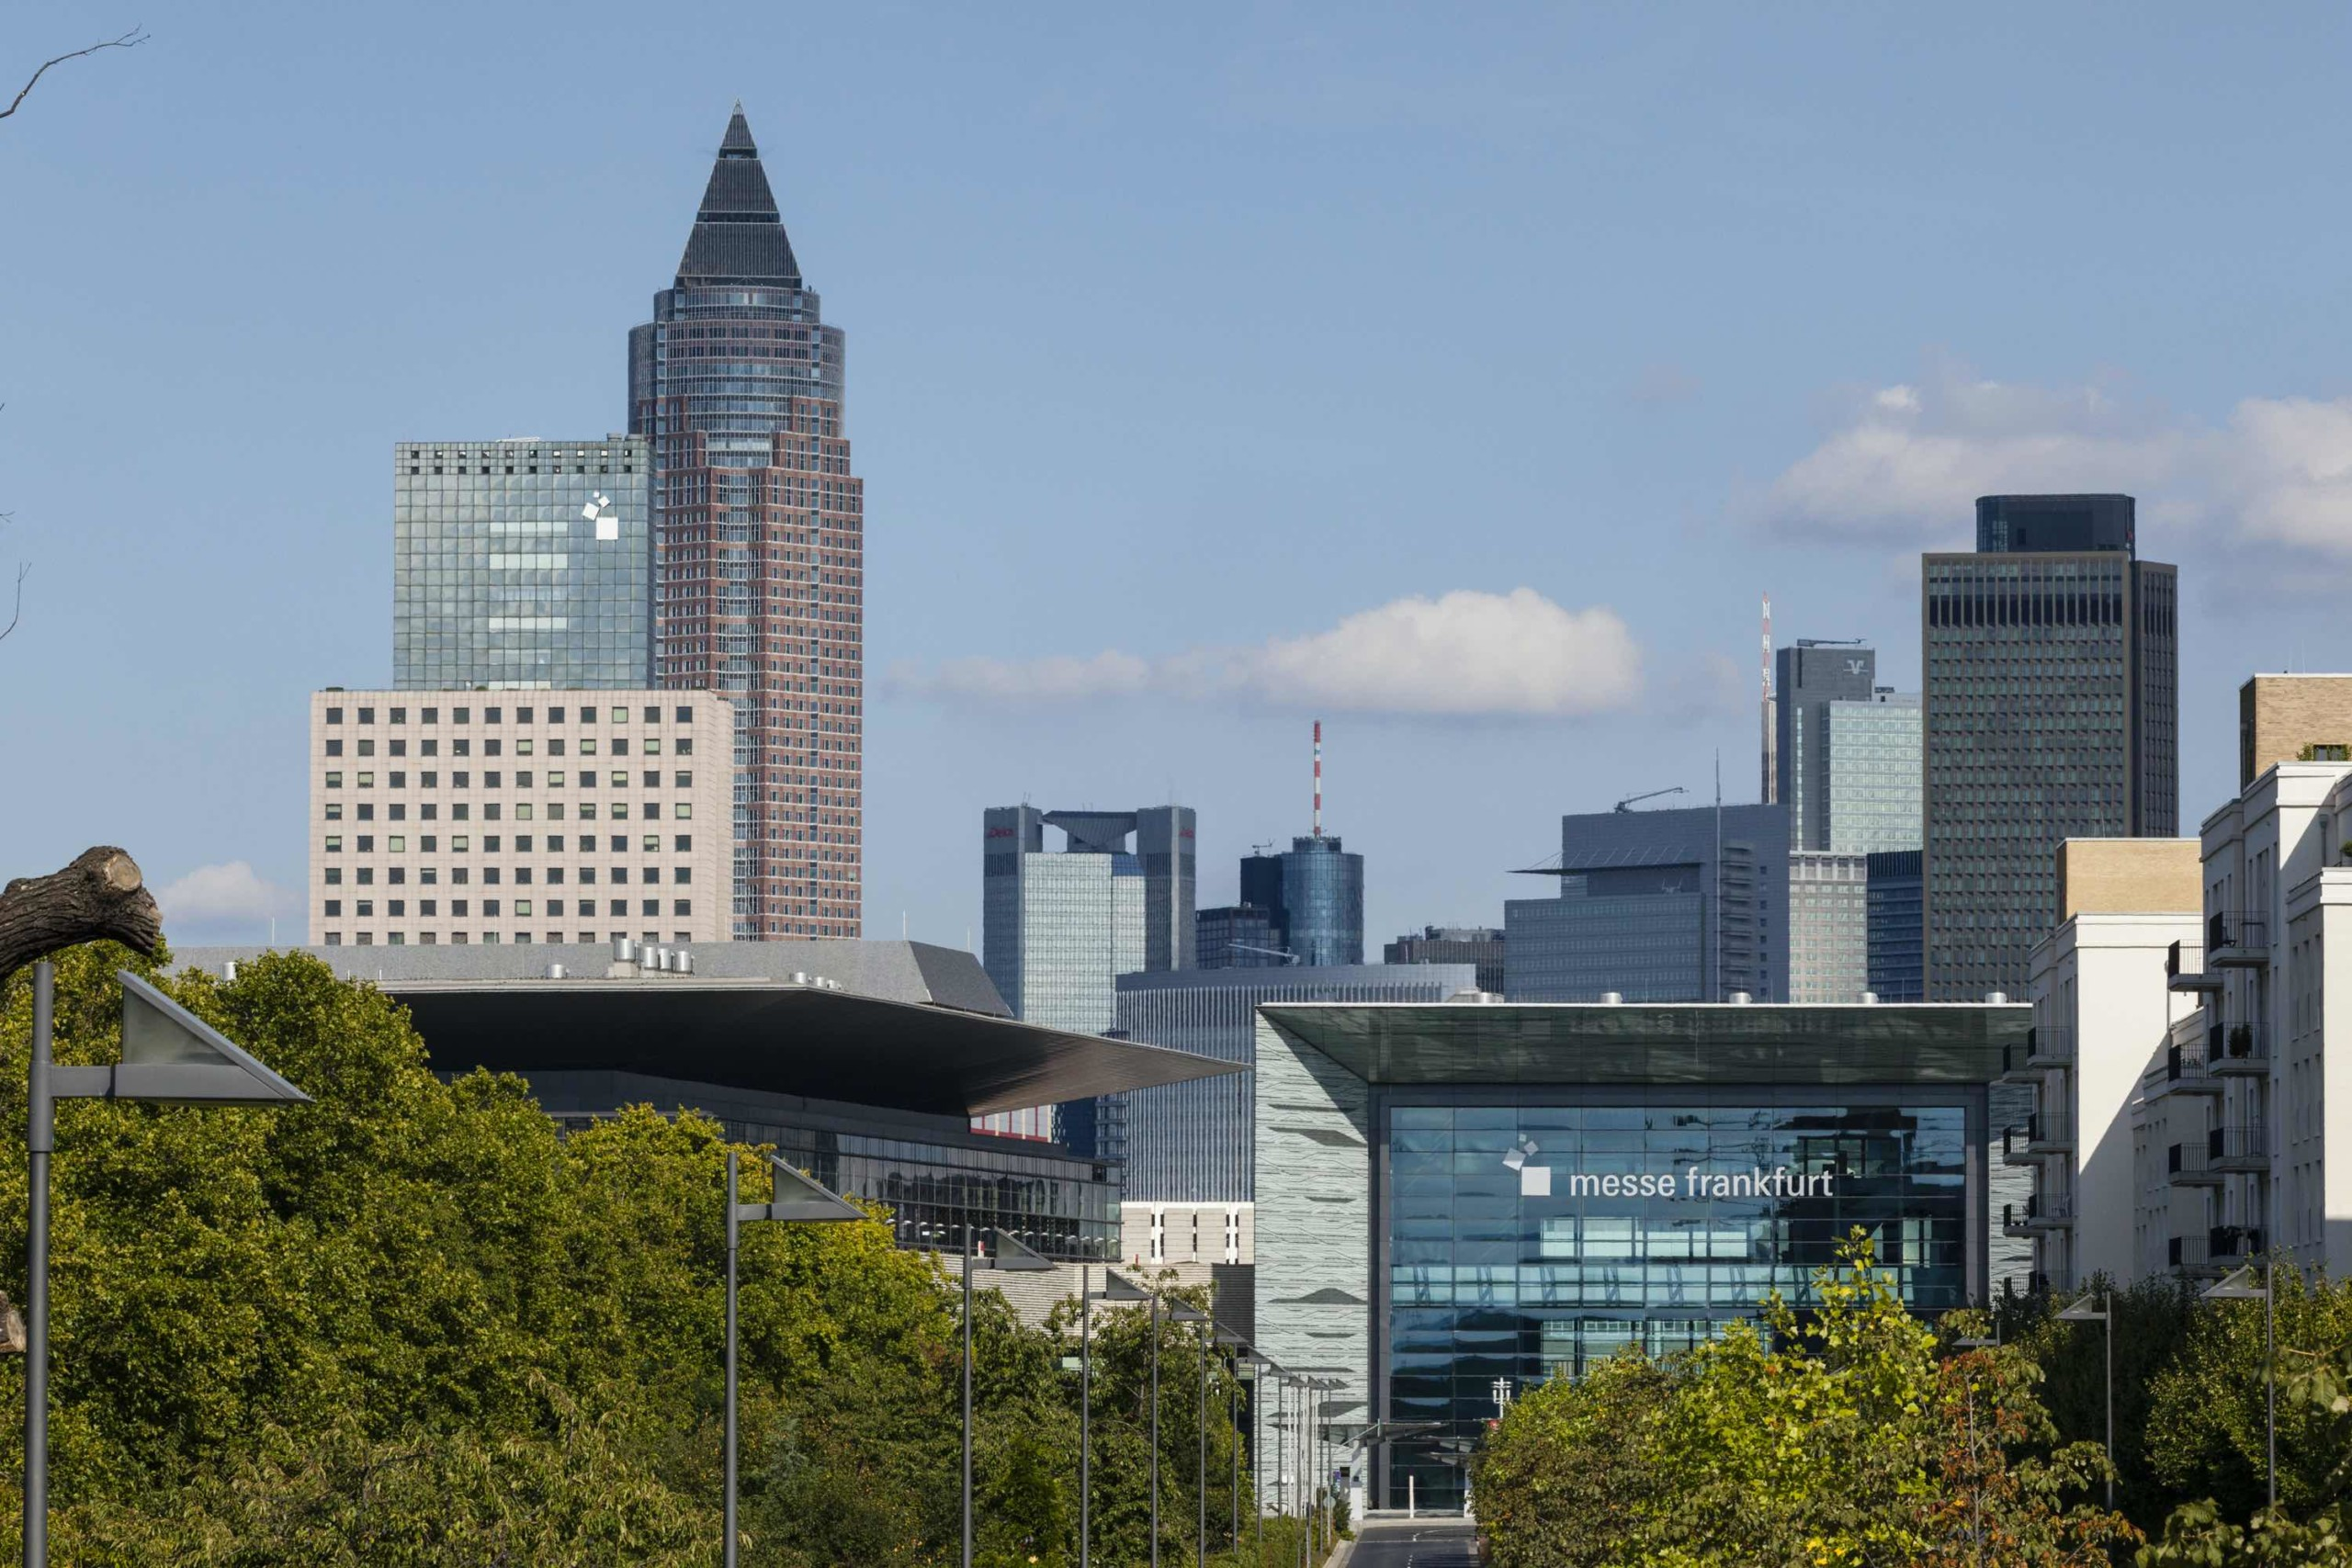 Frankfurt exhibition grounds get back to business